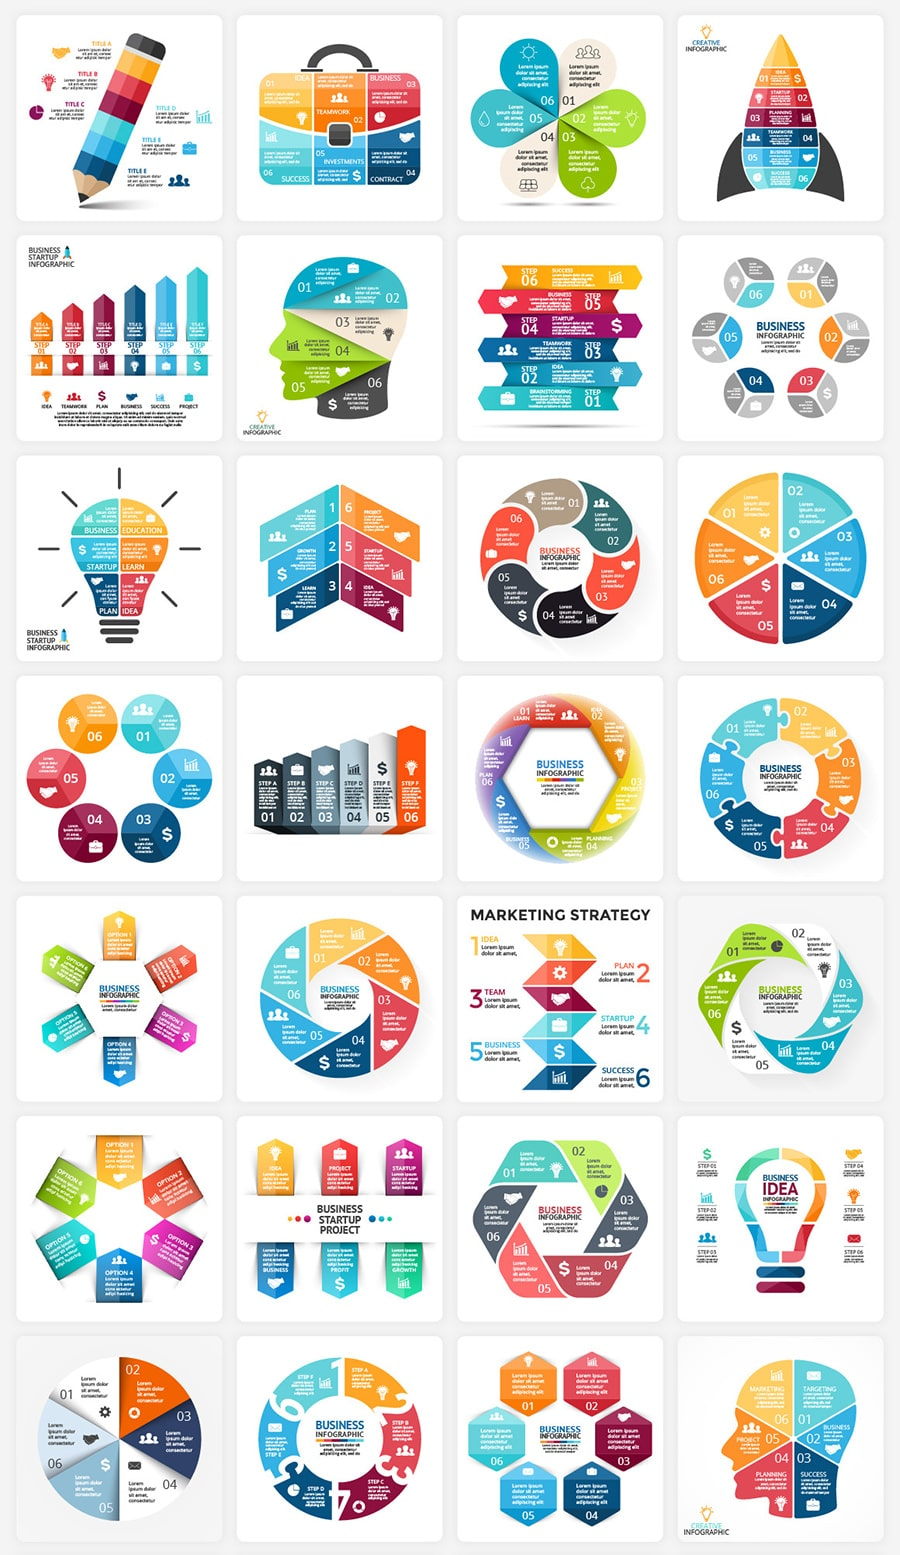 Original geometry and colors. This is the smallest thing that can be said about this infographic.